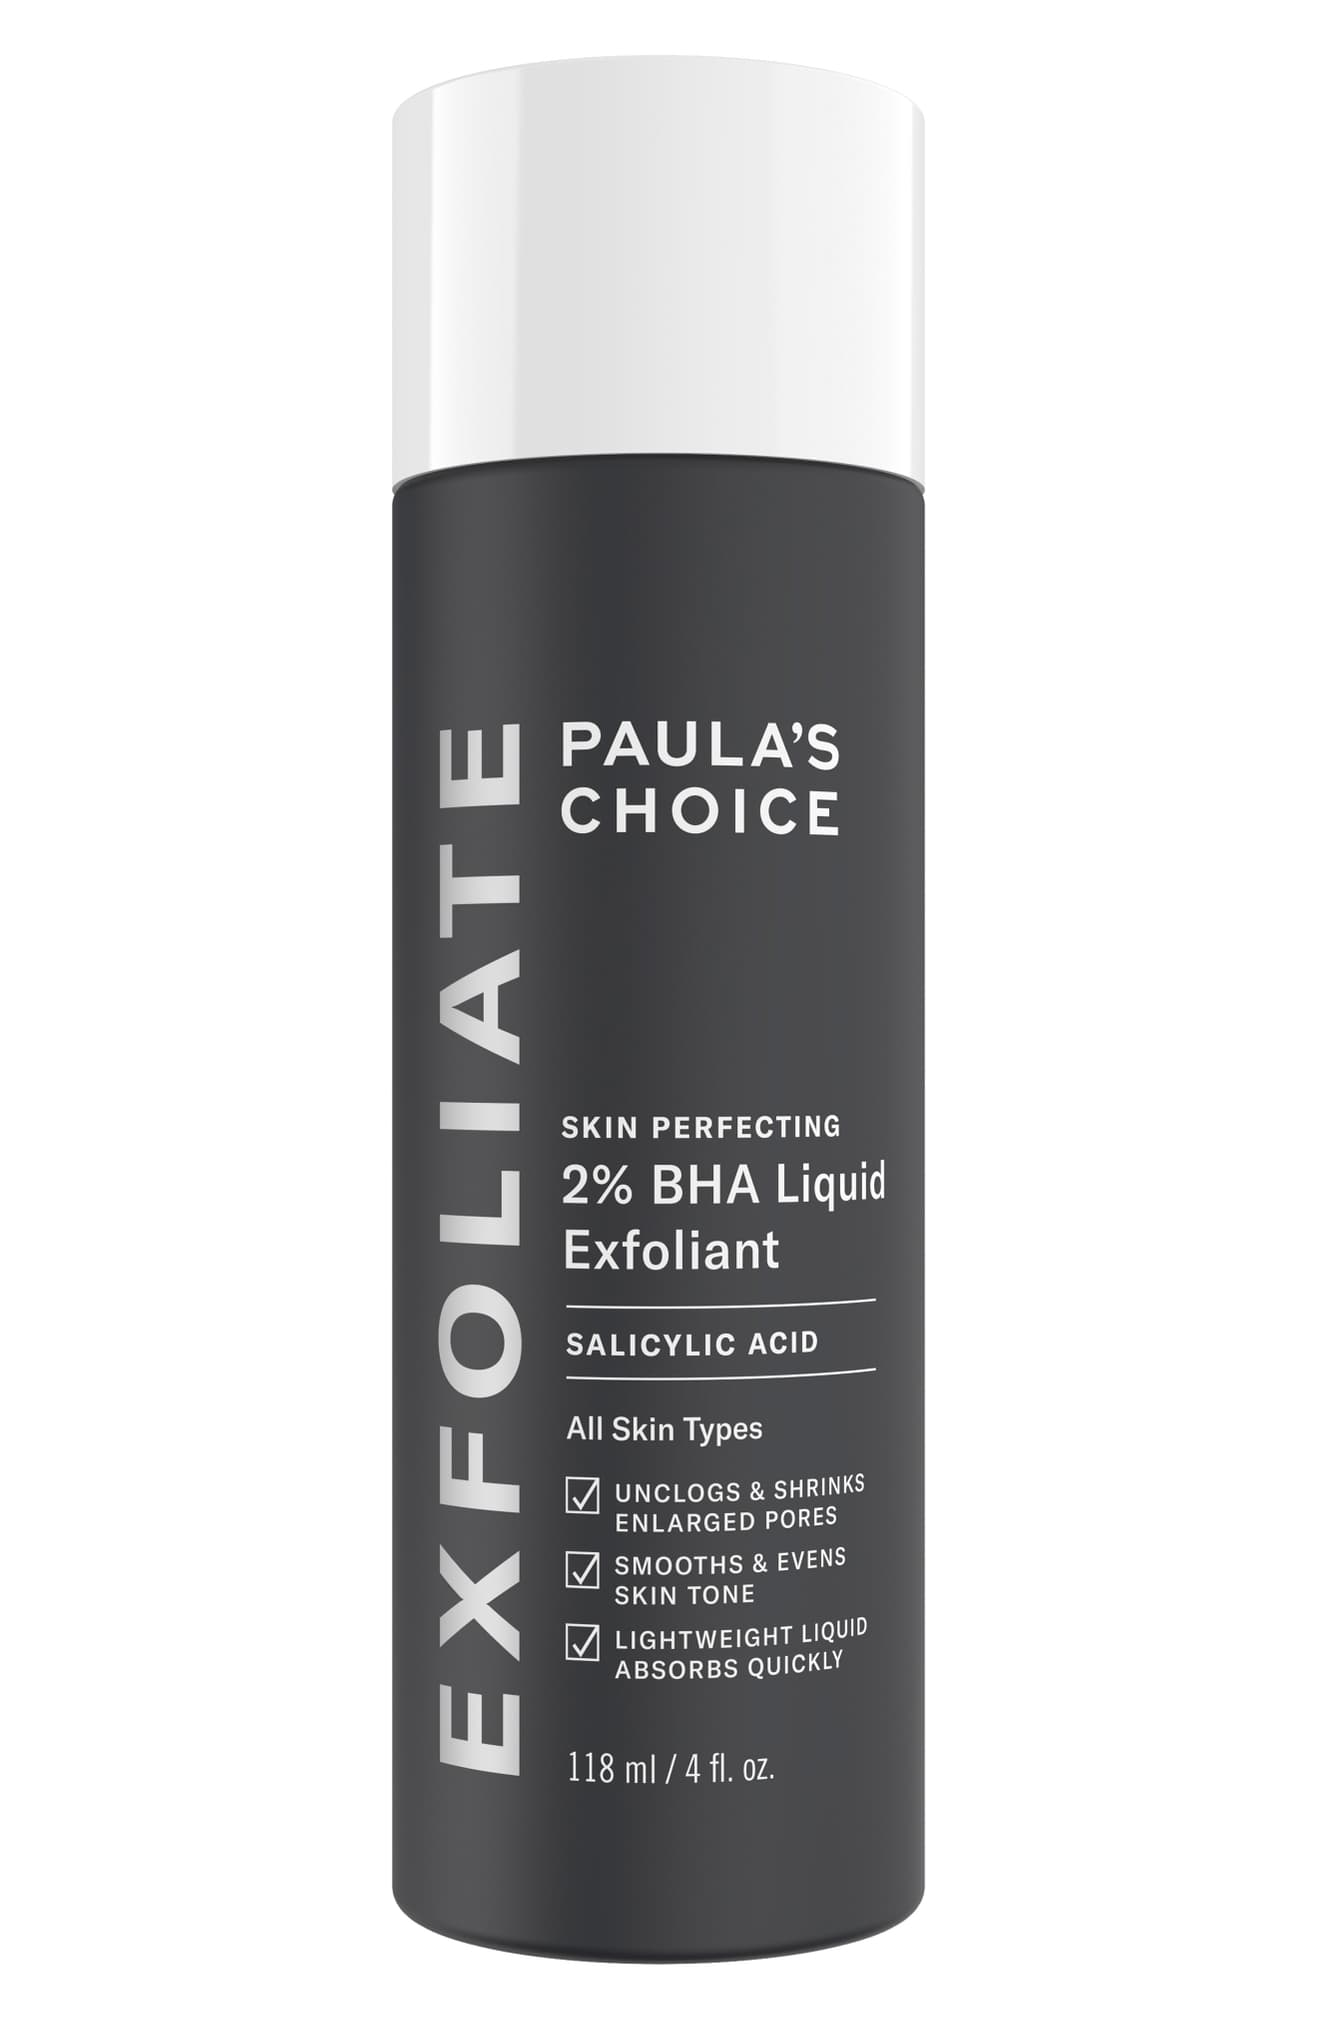 PAULA'S CHOICE-Skin Perfecting 2% Bha Liquid